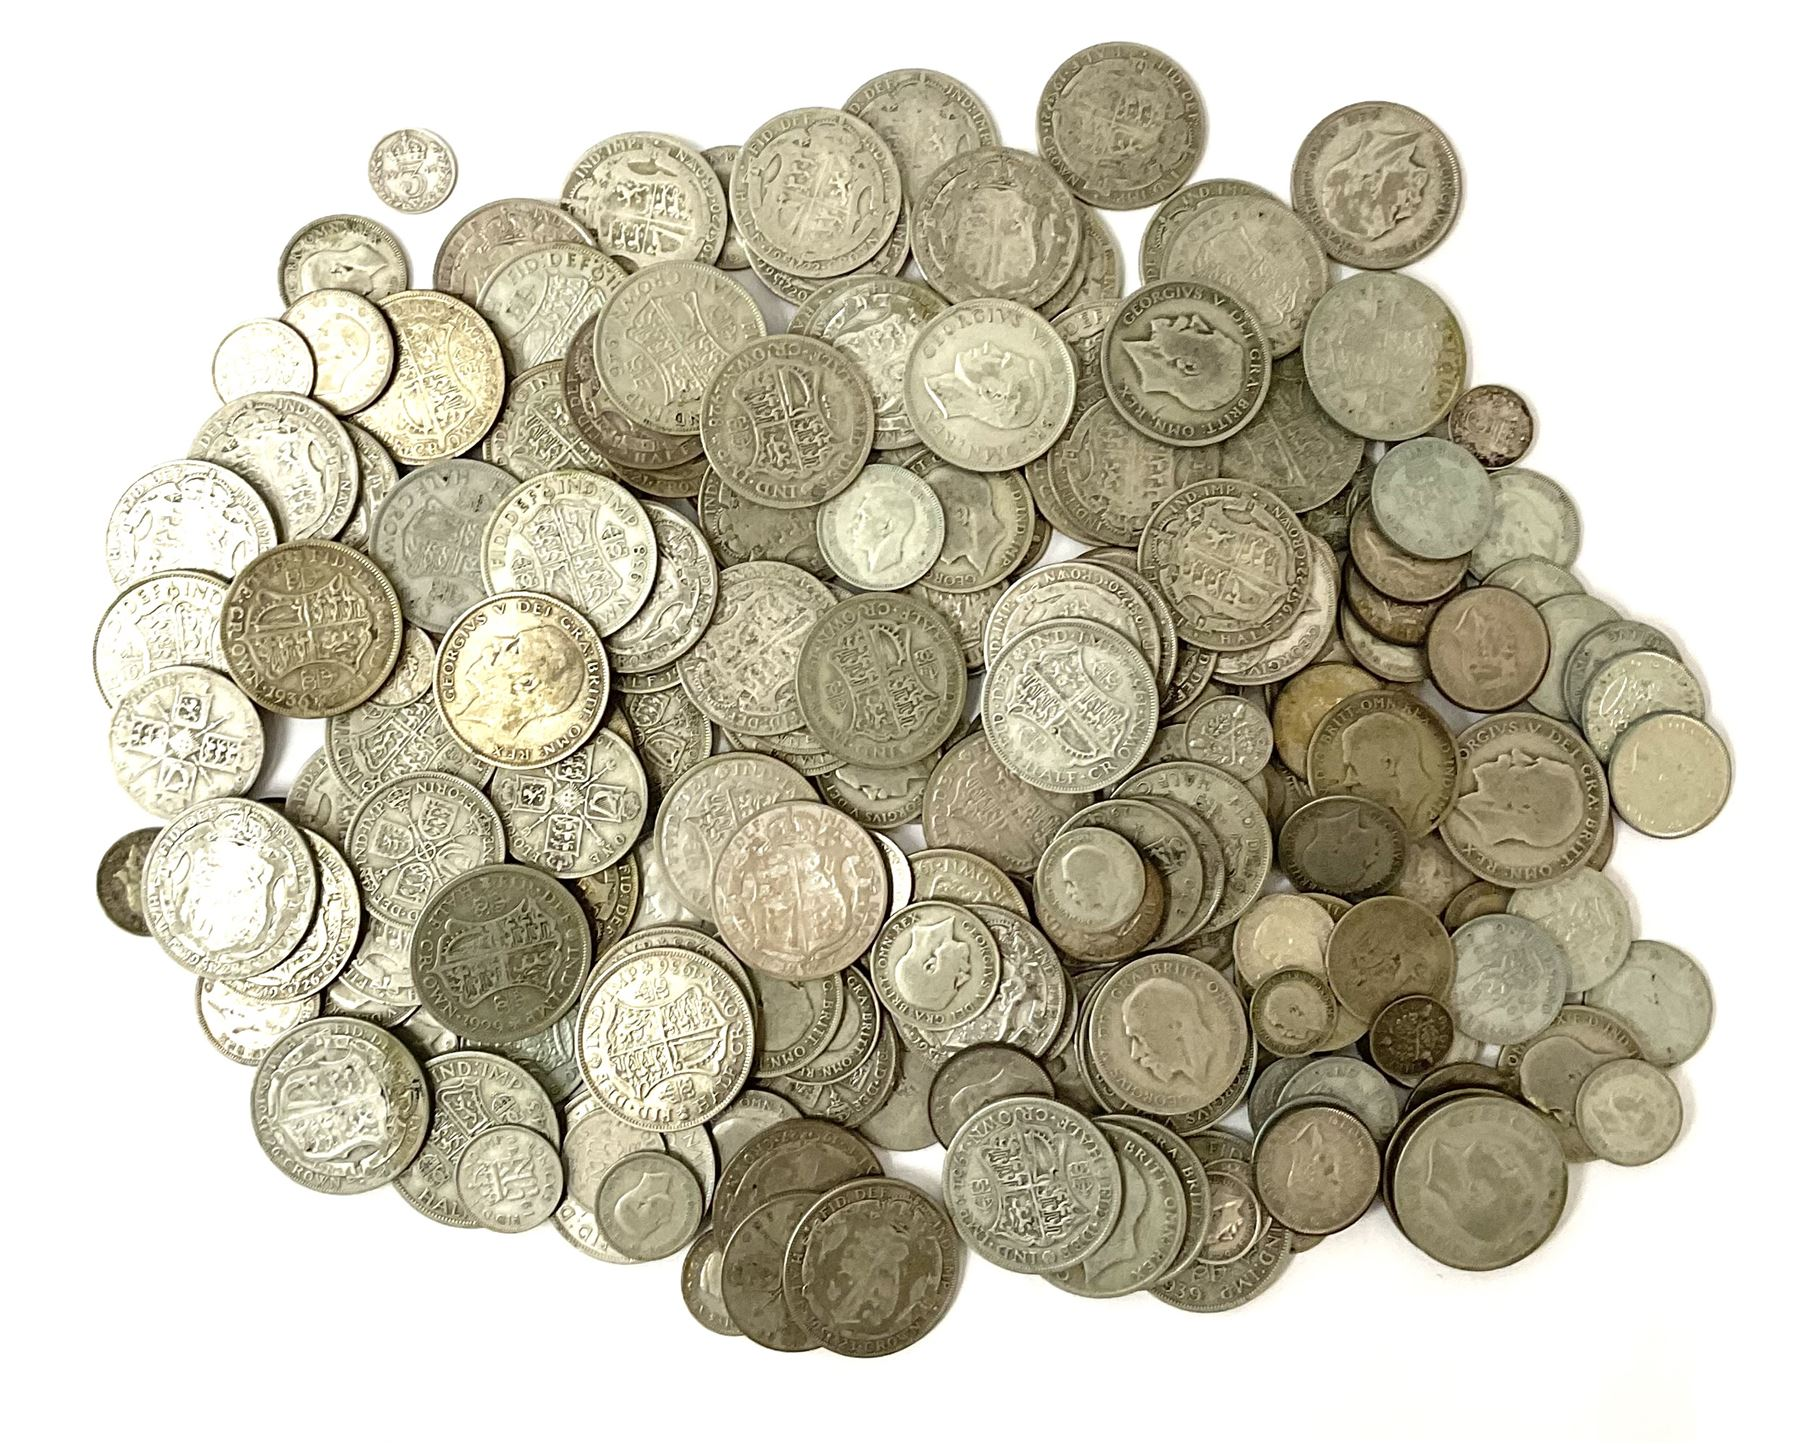 Approximately 1750 grams of Great British pre 1947 silver coins including half crowns